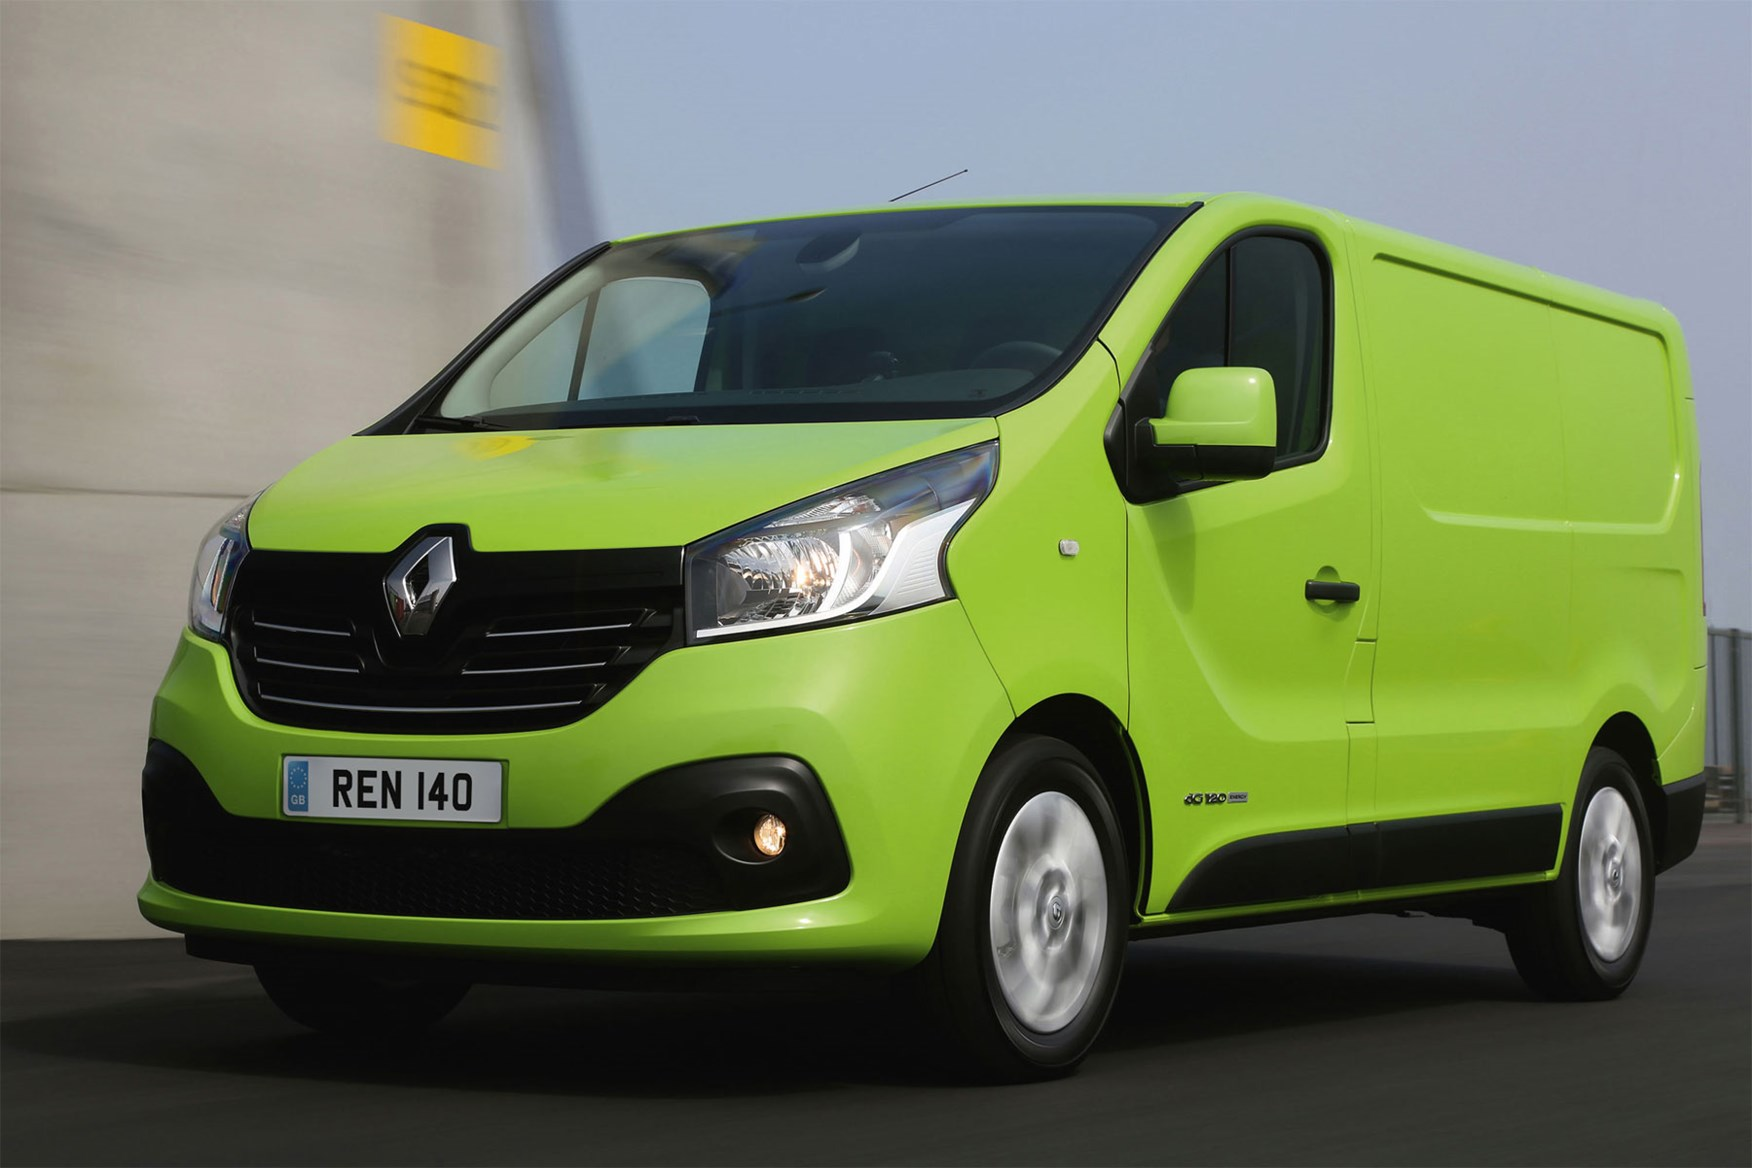 Renault Trafic review - 2014, green, front view, driving